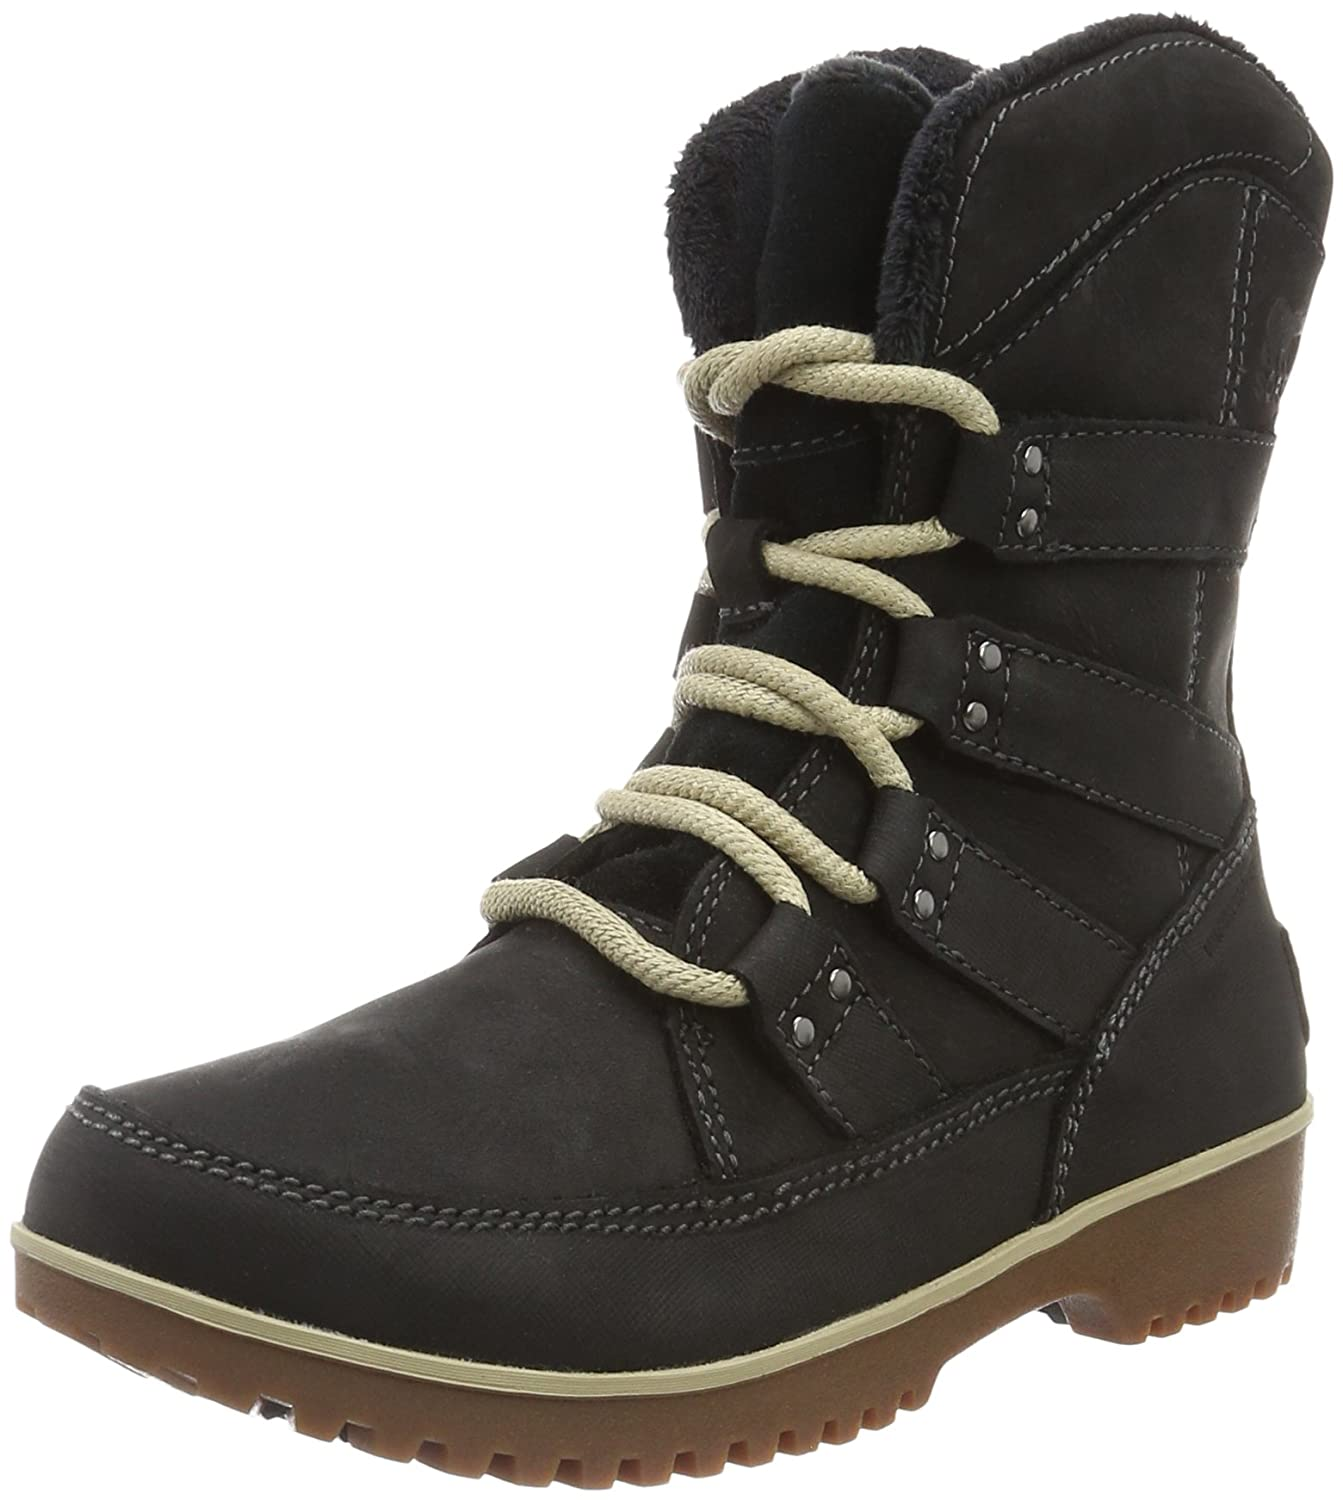 Sorel Damen Meadow Lace Premium Winterstiefel    5ca802